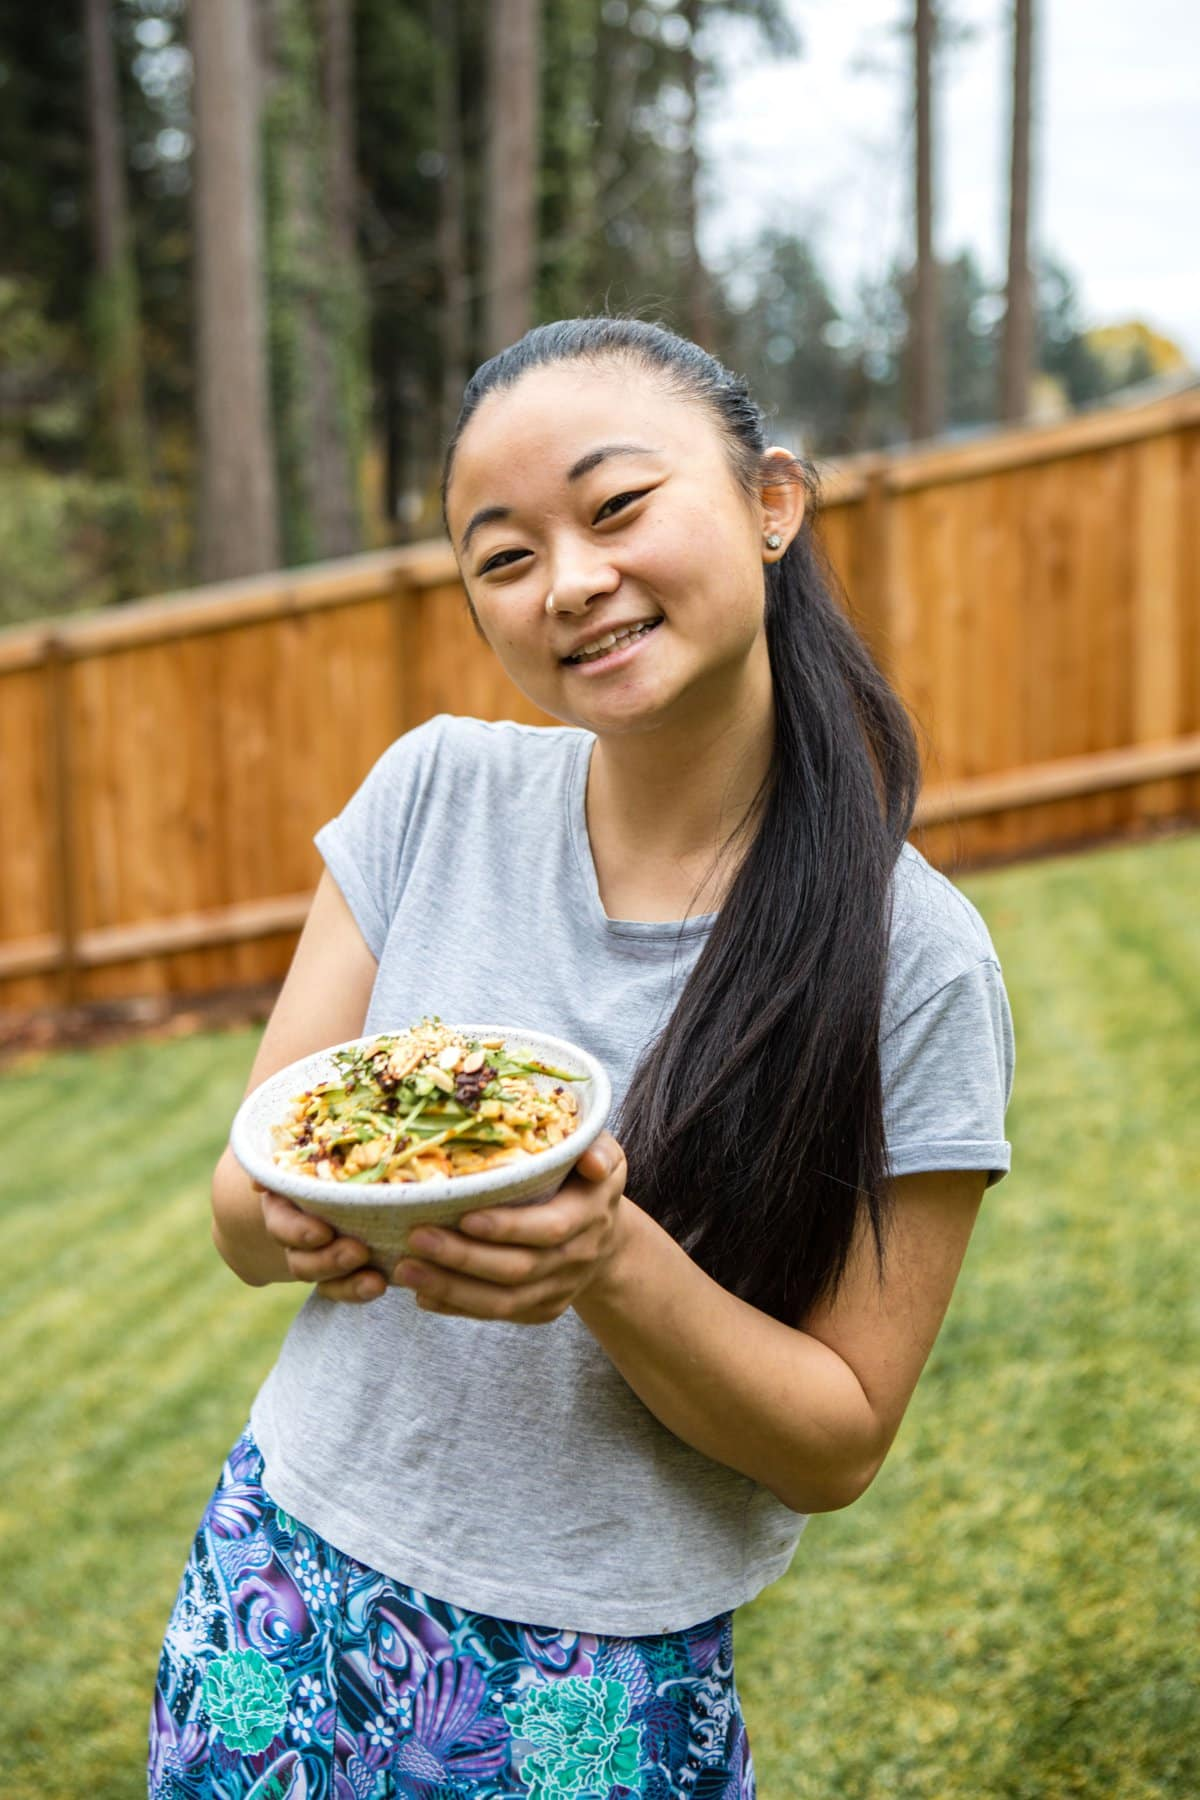 liz smiling and holding bowl of sesame noodles